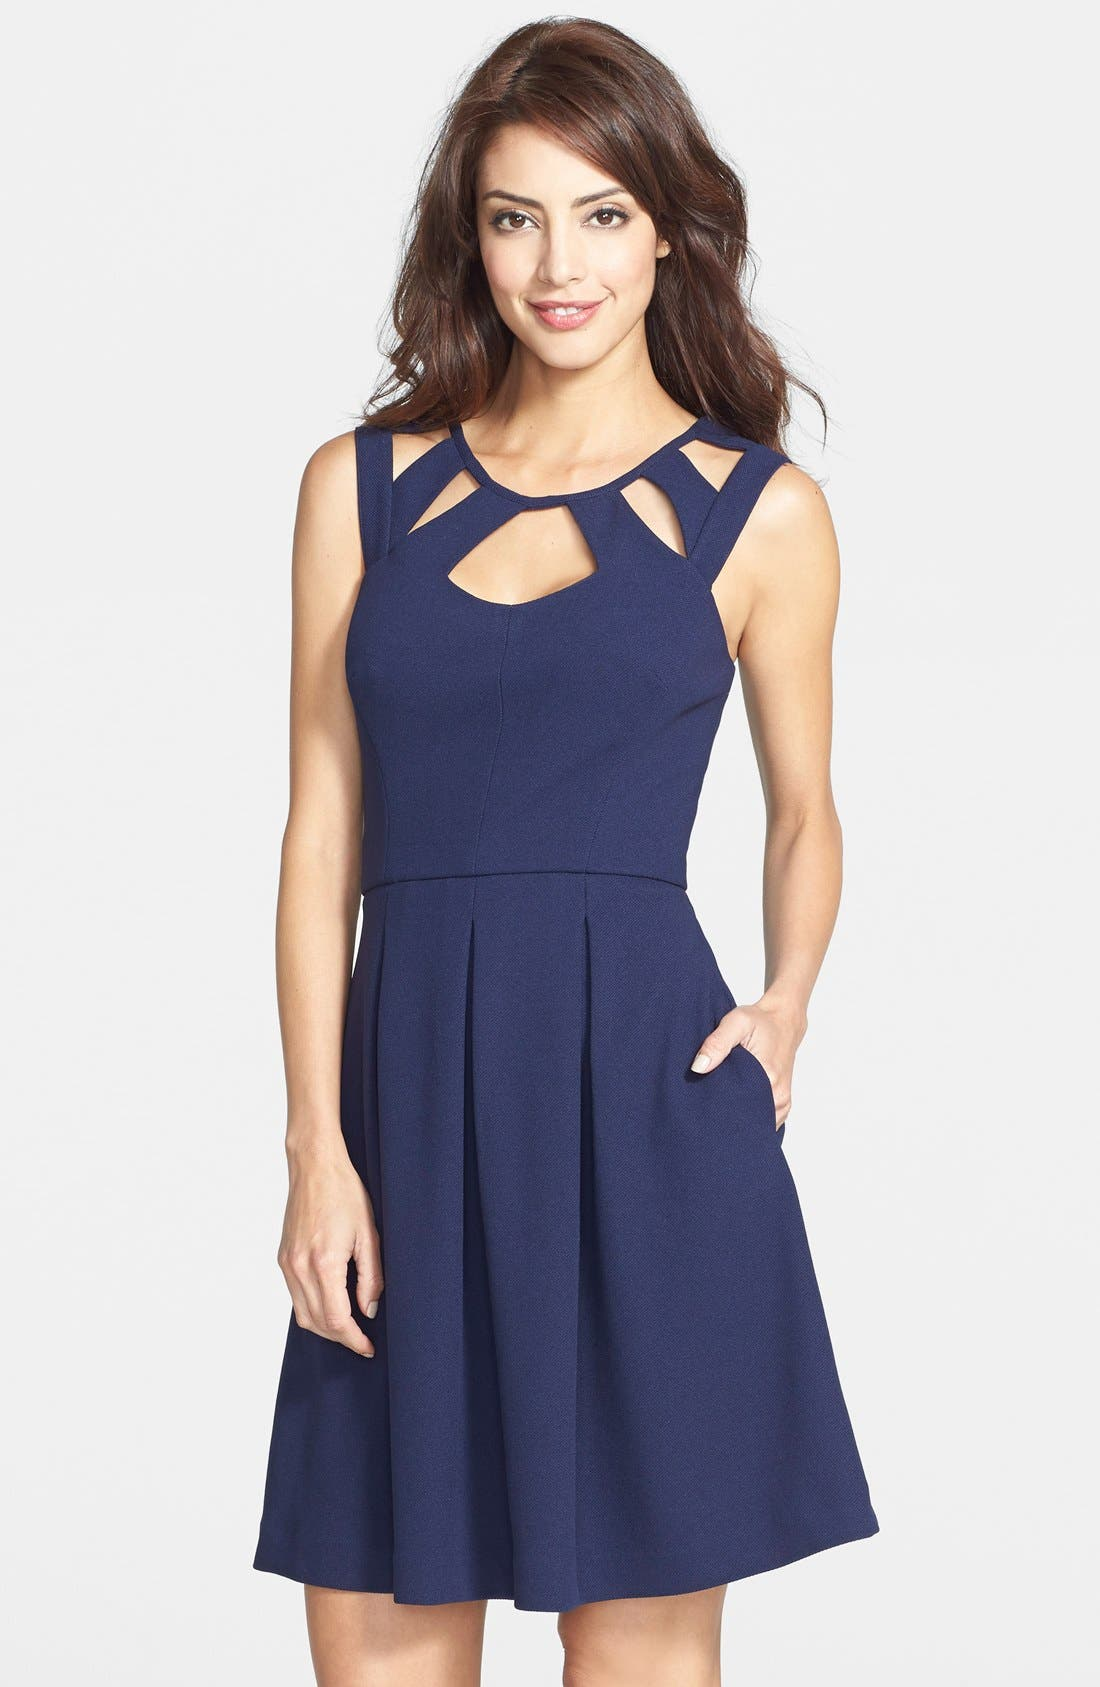 Alternate Image 1 Selected - Betsey Johnson Cutout Fit & Flare Dress